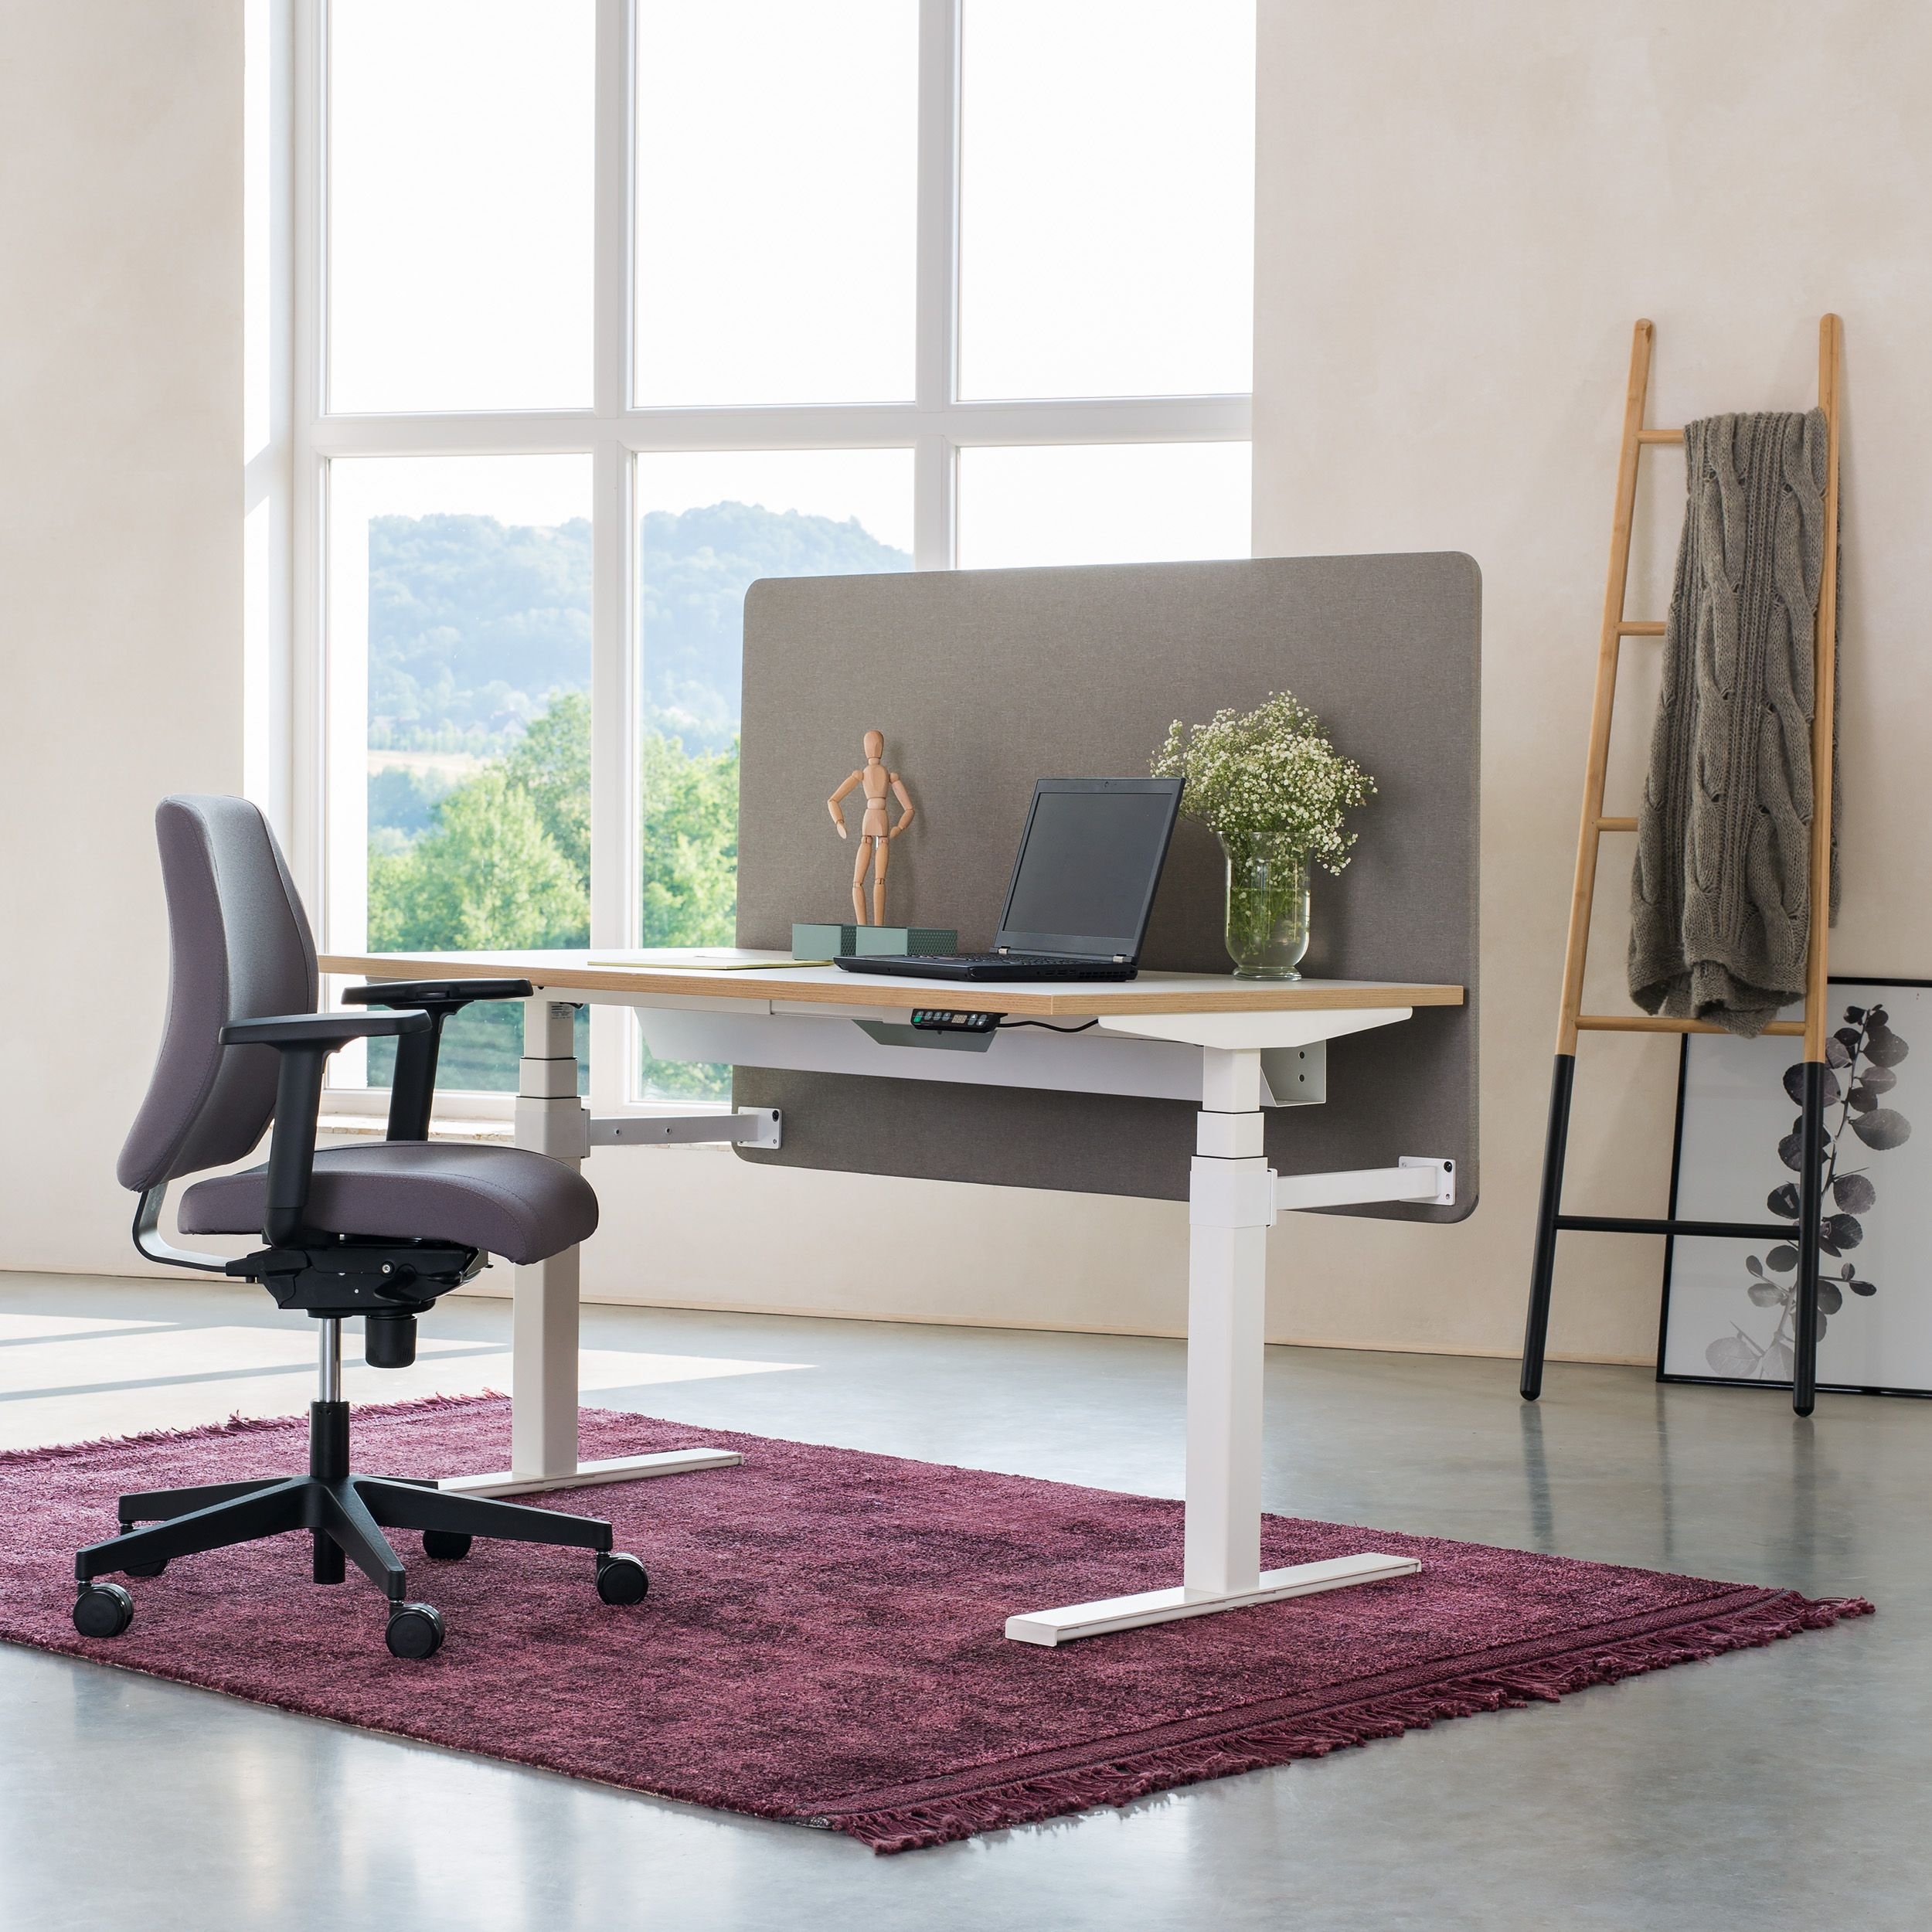 In Accordance With The Concept Of A Flexible Office That